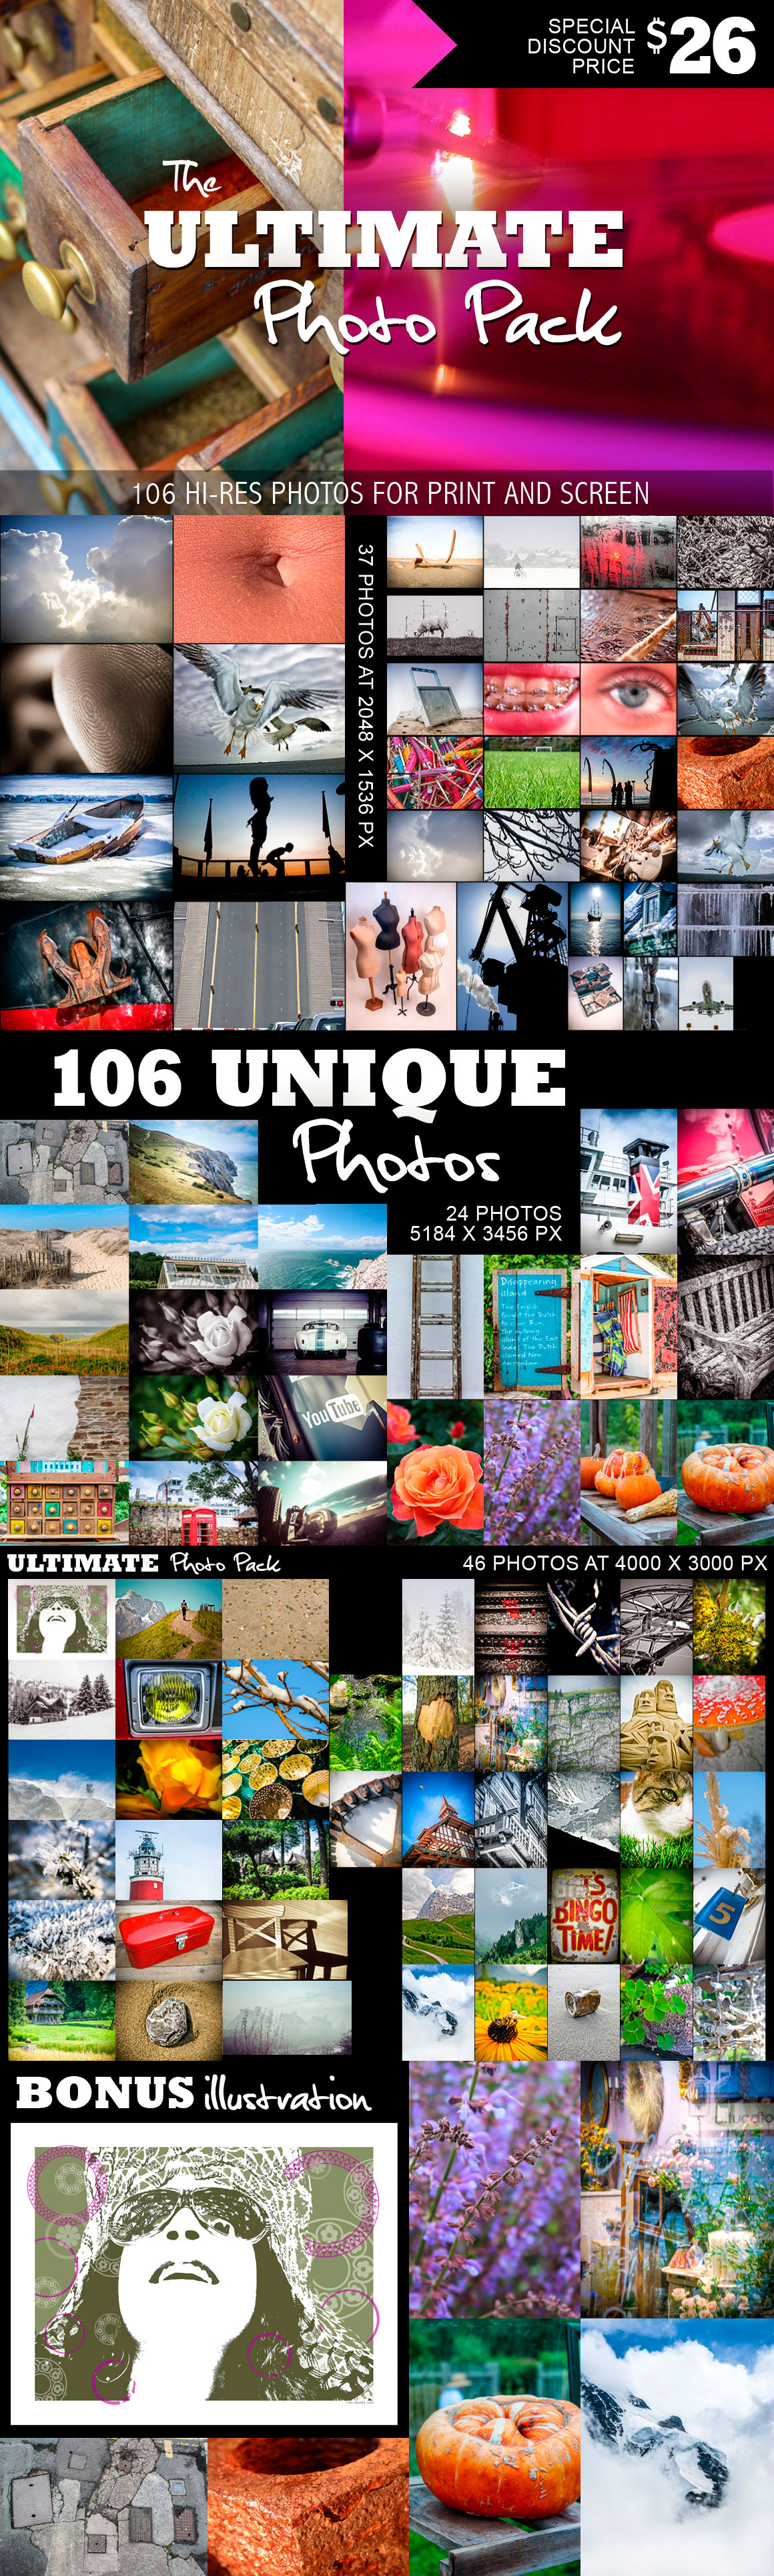 ultimate-photo-pack